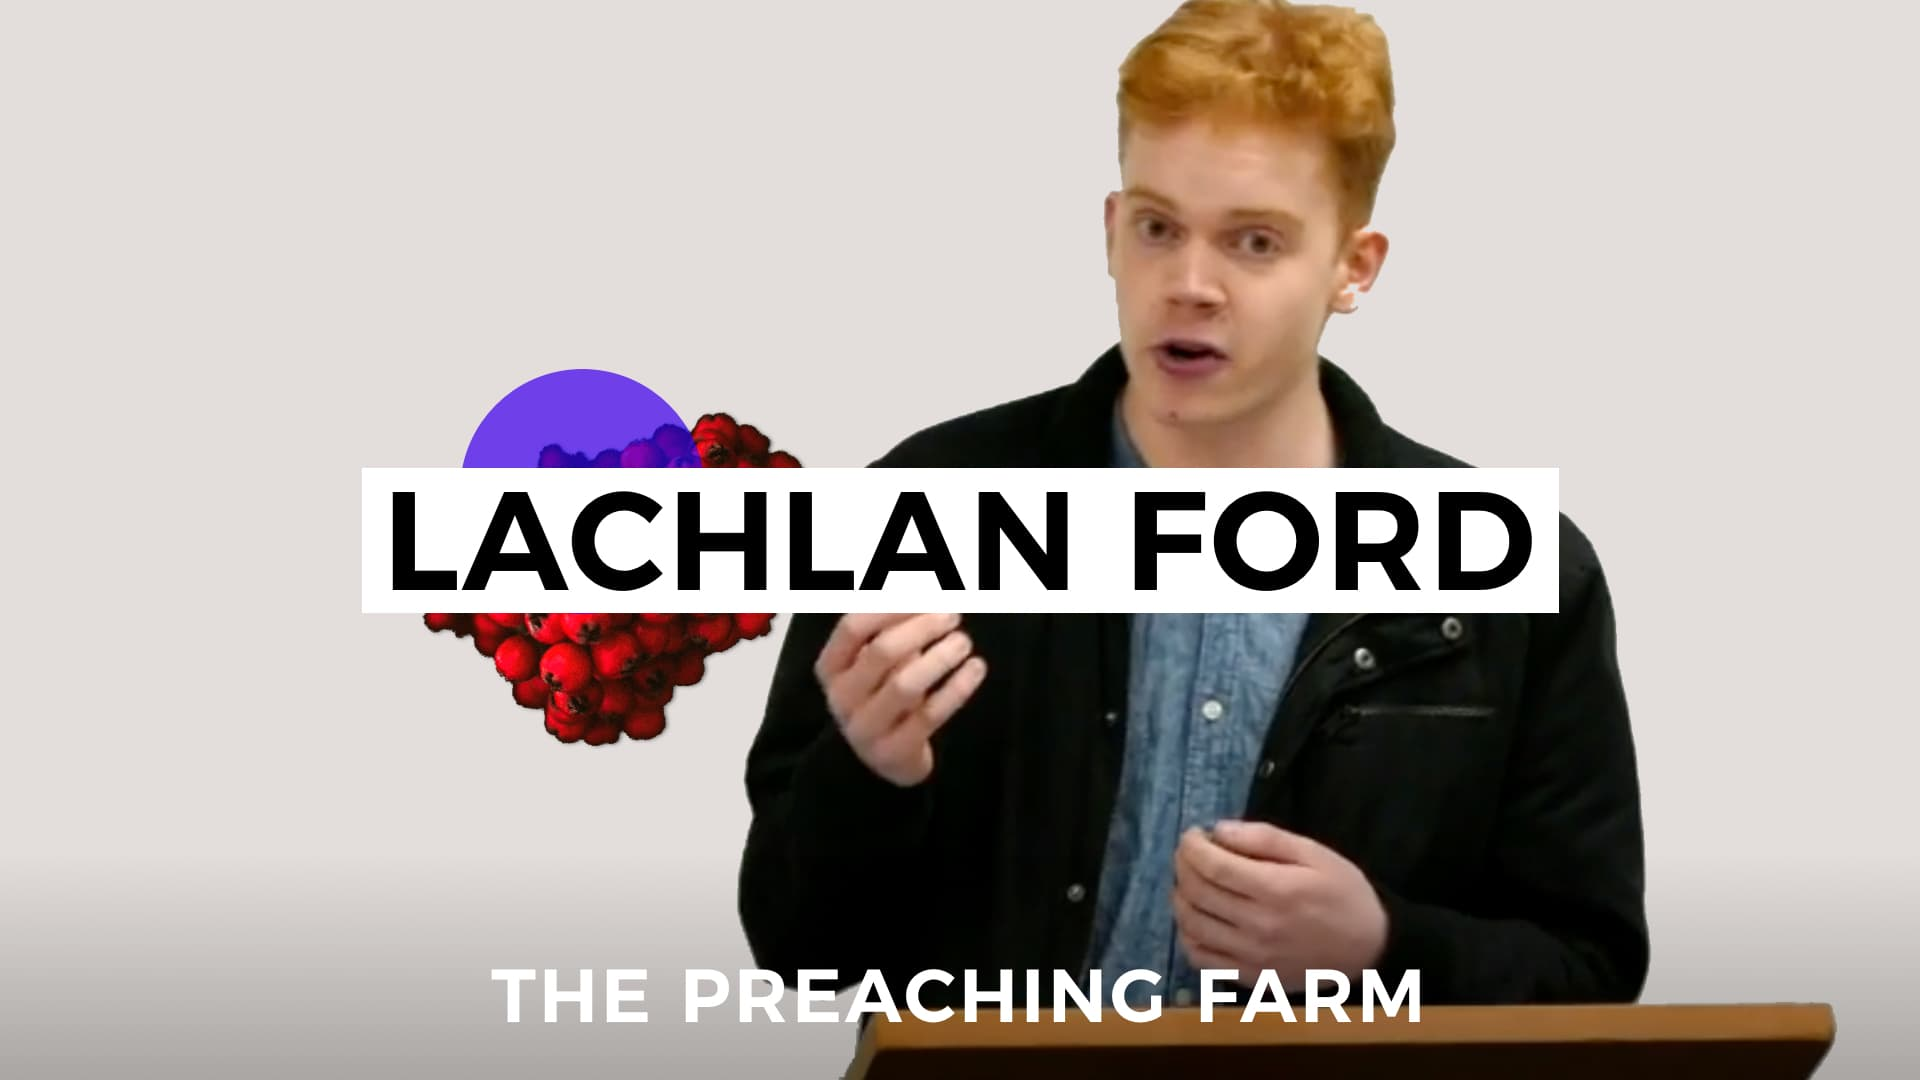 The Preaching Farm 2: Lachlan Ford